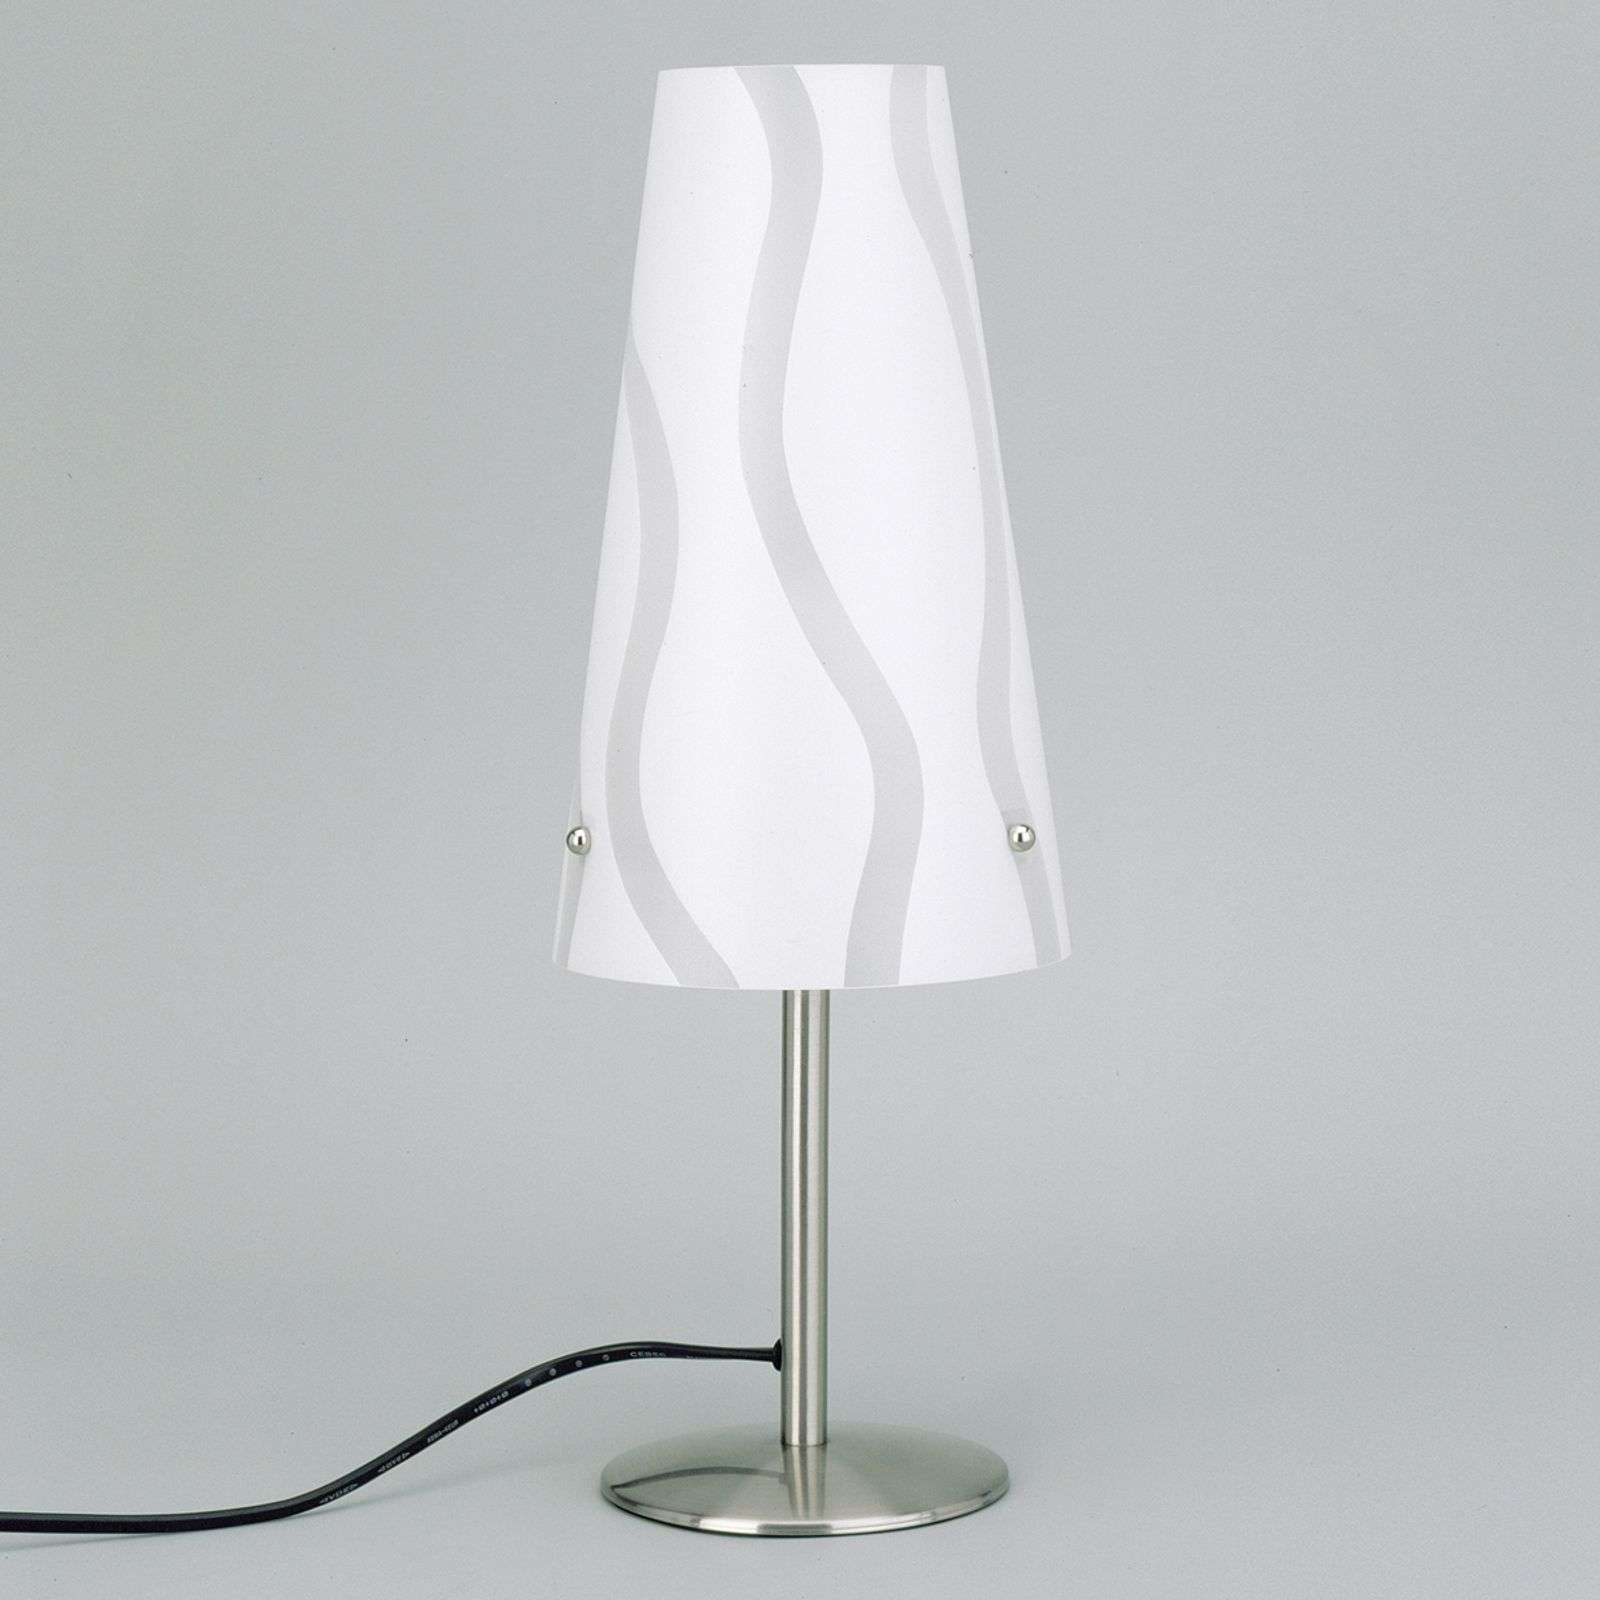 Lampe à poser moderne Isi blanche